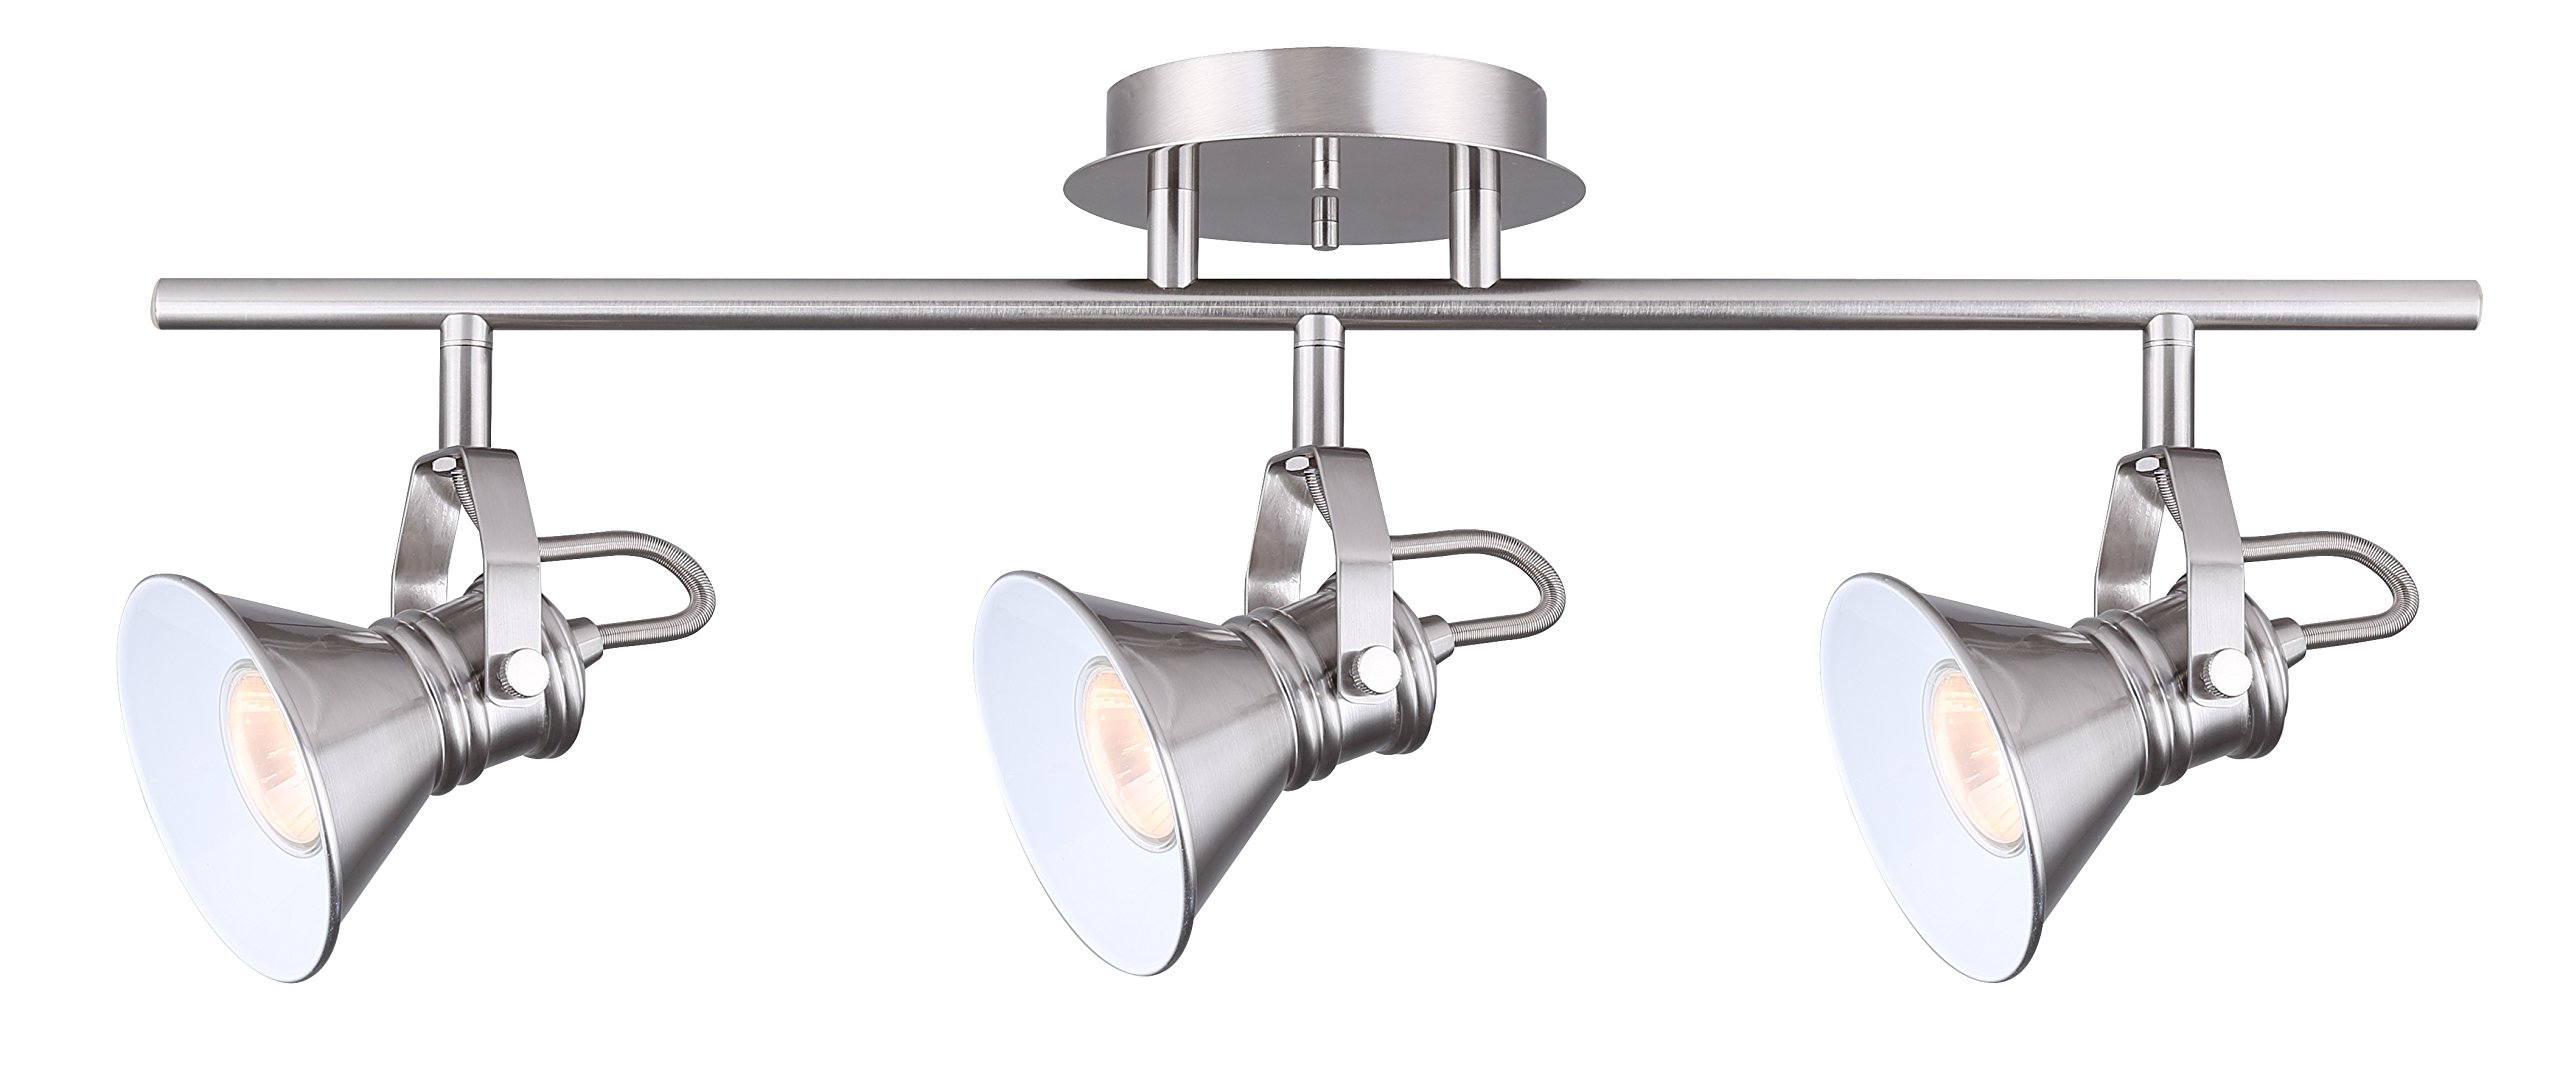 Canarn Morocco 3 Light Track Light with Adjustable Heads - Brushed Nickel - Easy Connect Included